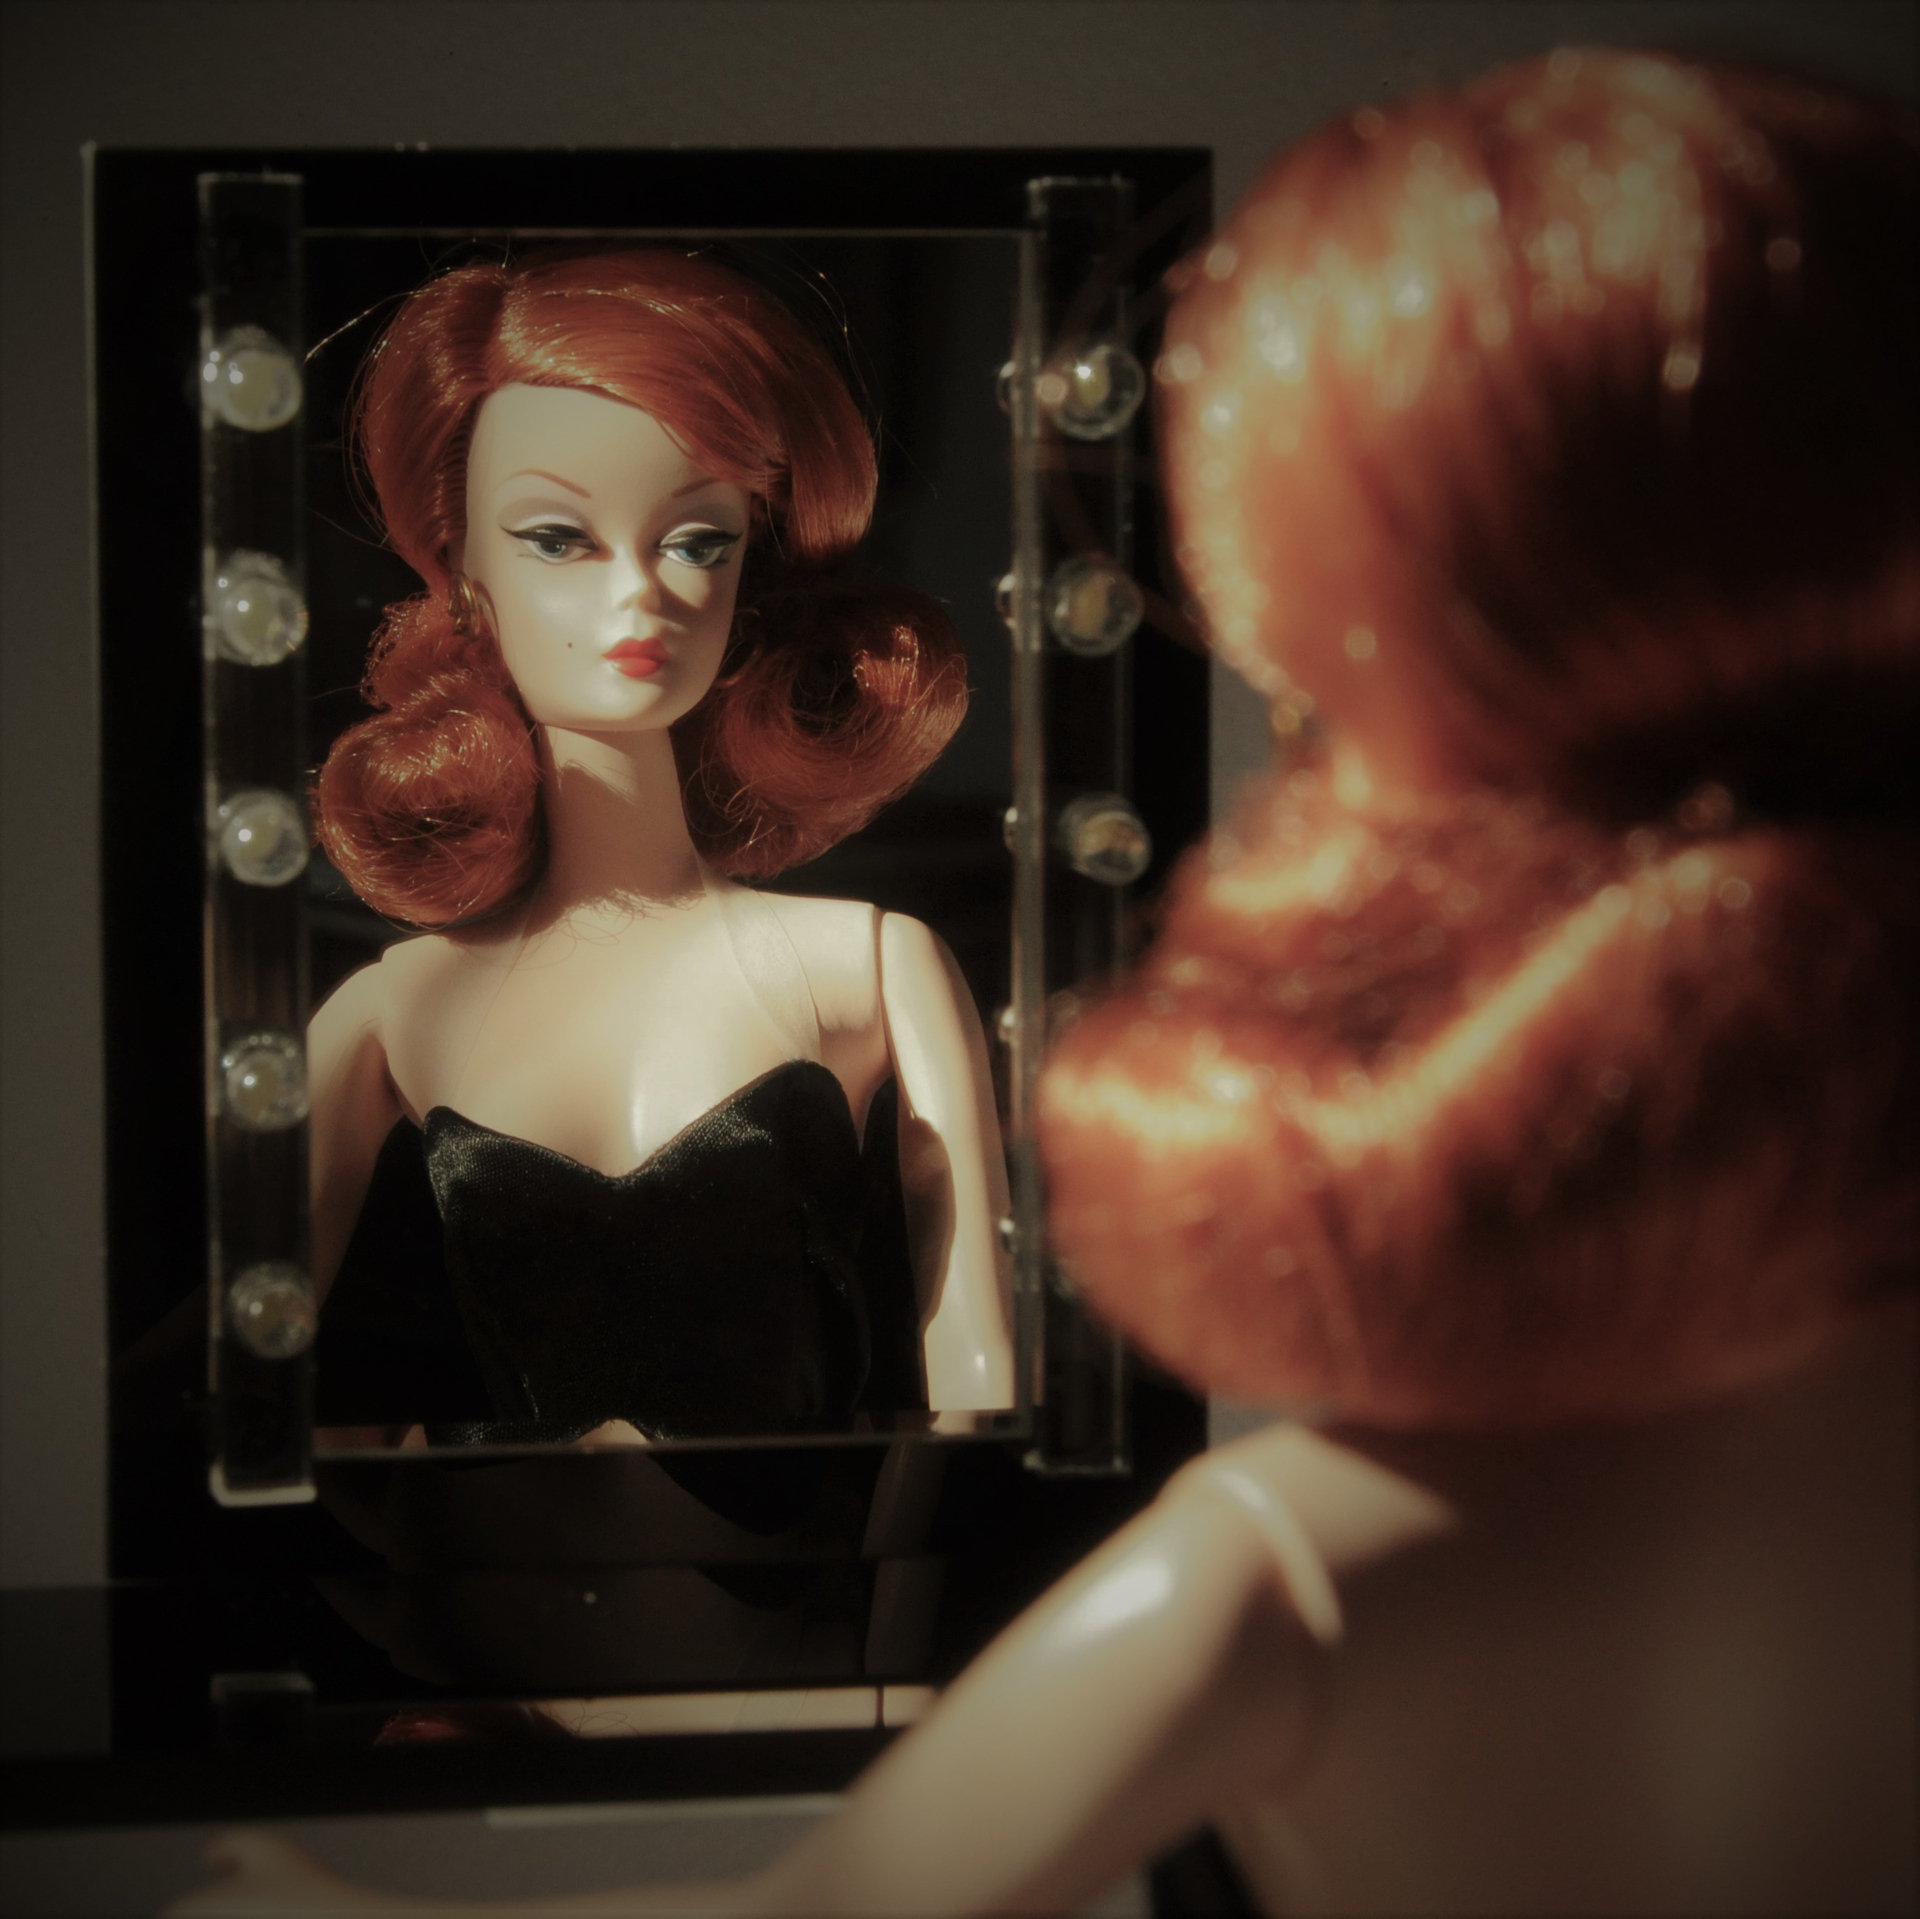 Barbie-Dusk to Dawn Series #2 by Andrea McCafferty